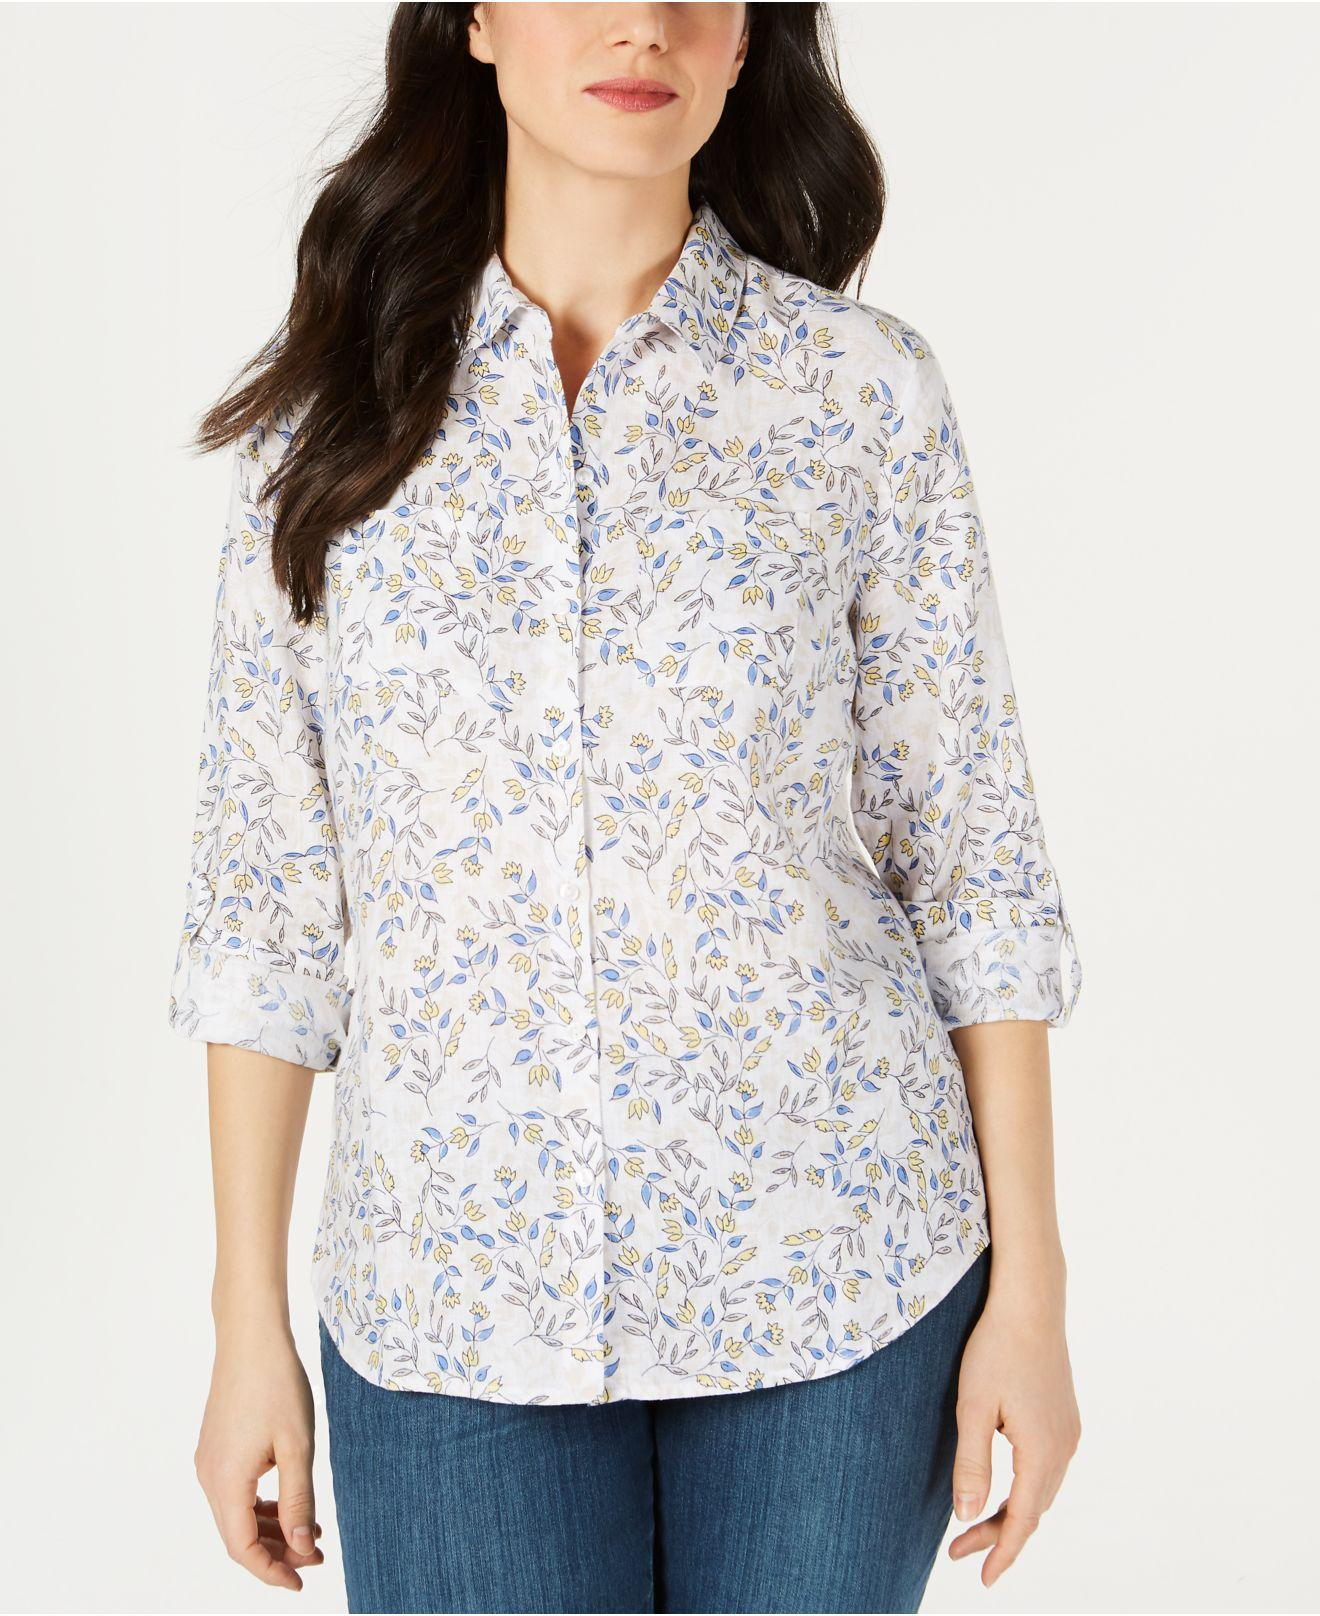 9cd2f89f21f Lyst - Charter Club Printed Linen Button-up Top